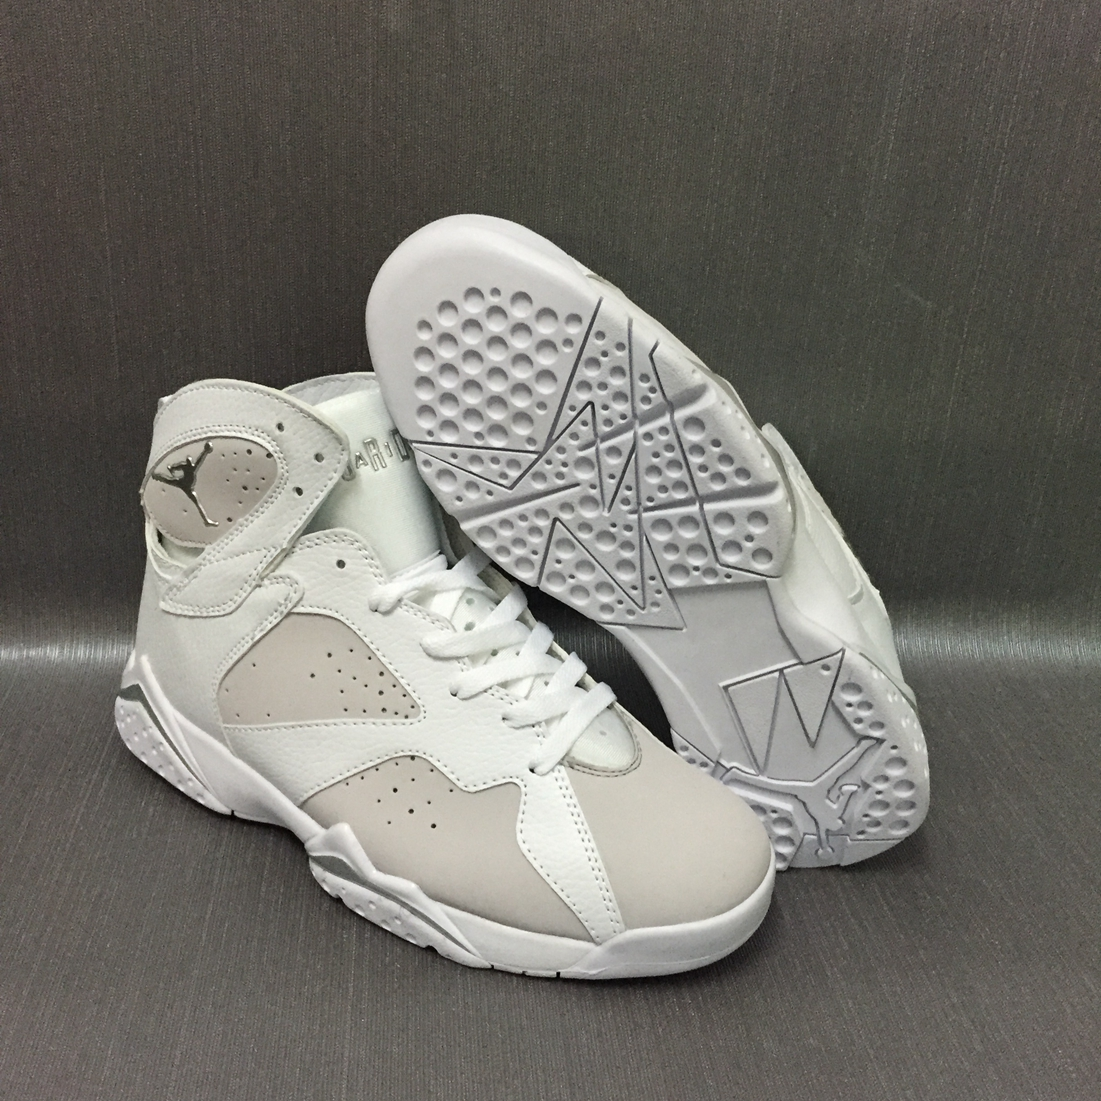 dfd10ef5f14c4e 2017 Air Jordan Retro 7 White Pure Platinum PRE ORDER MEN SHOES - Febbuy